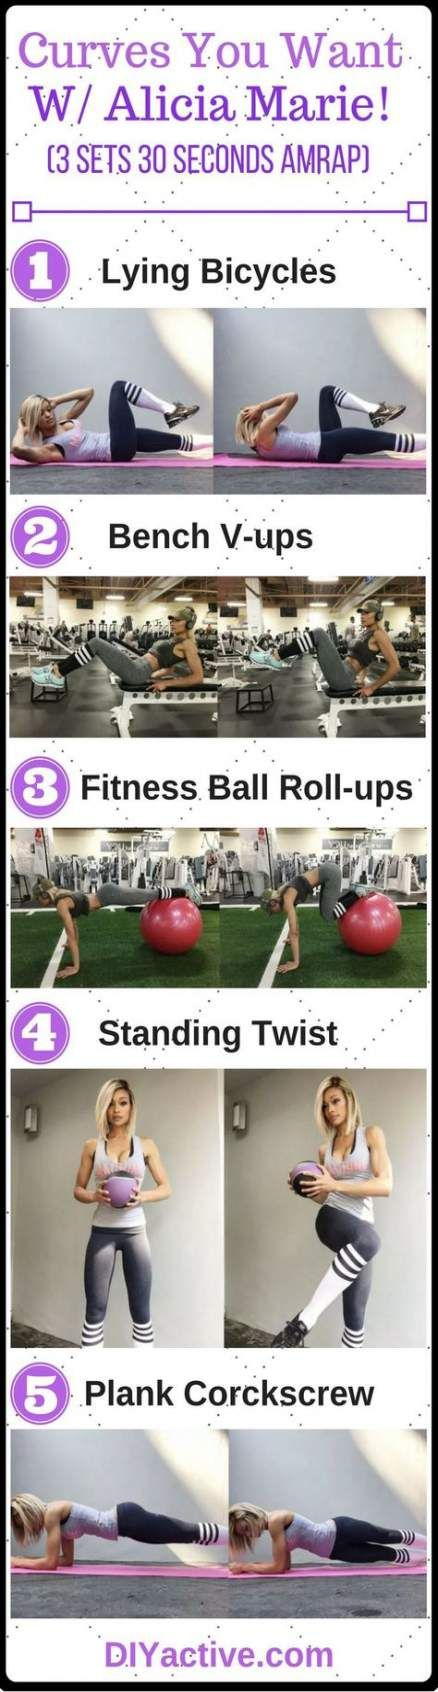 39 trendy ideas for fitness body curves abs #fitness